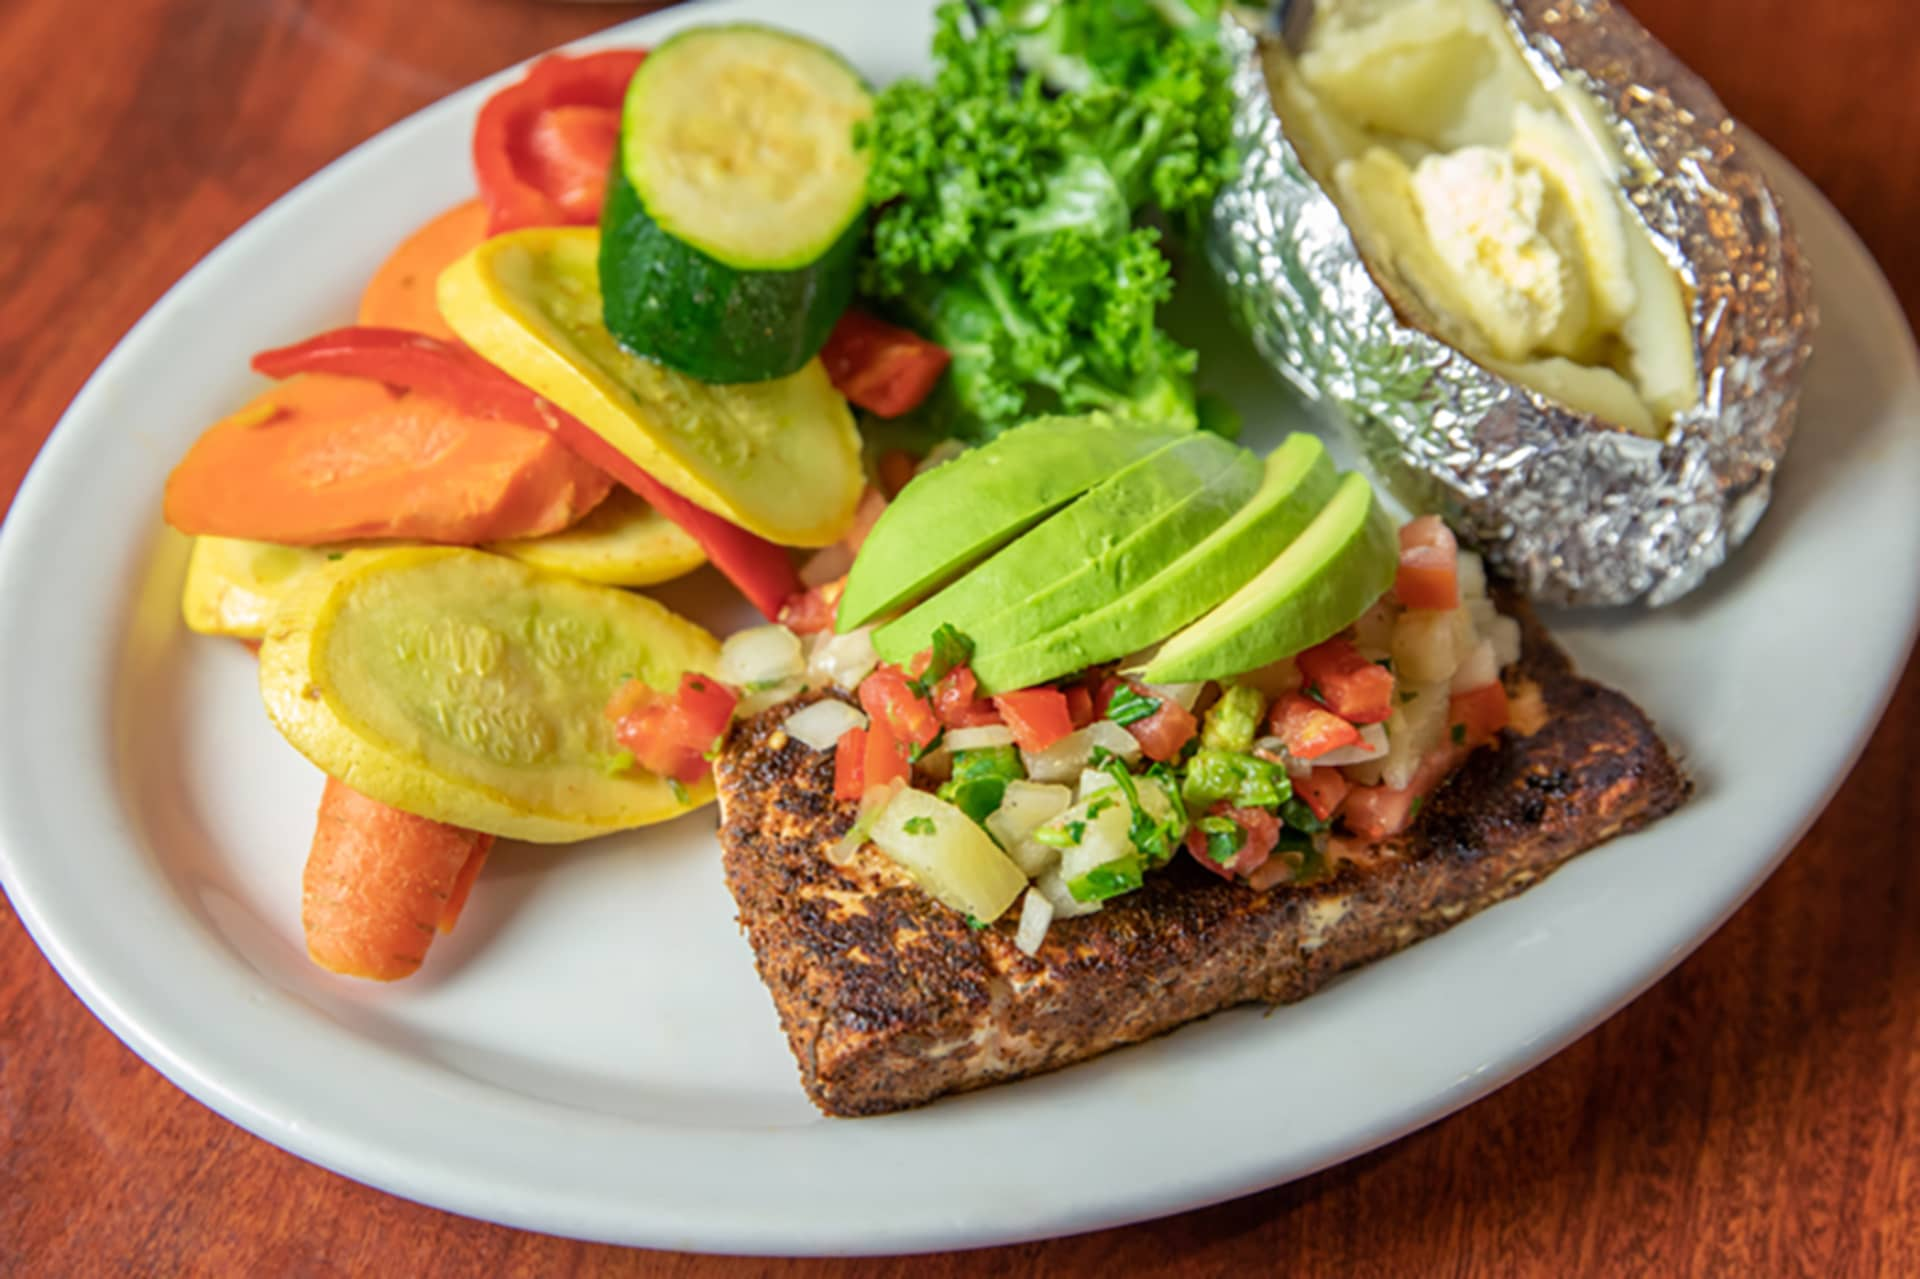 Southwest Blackened Salmon